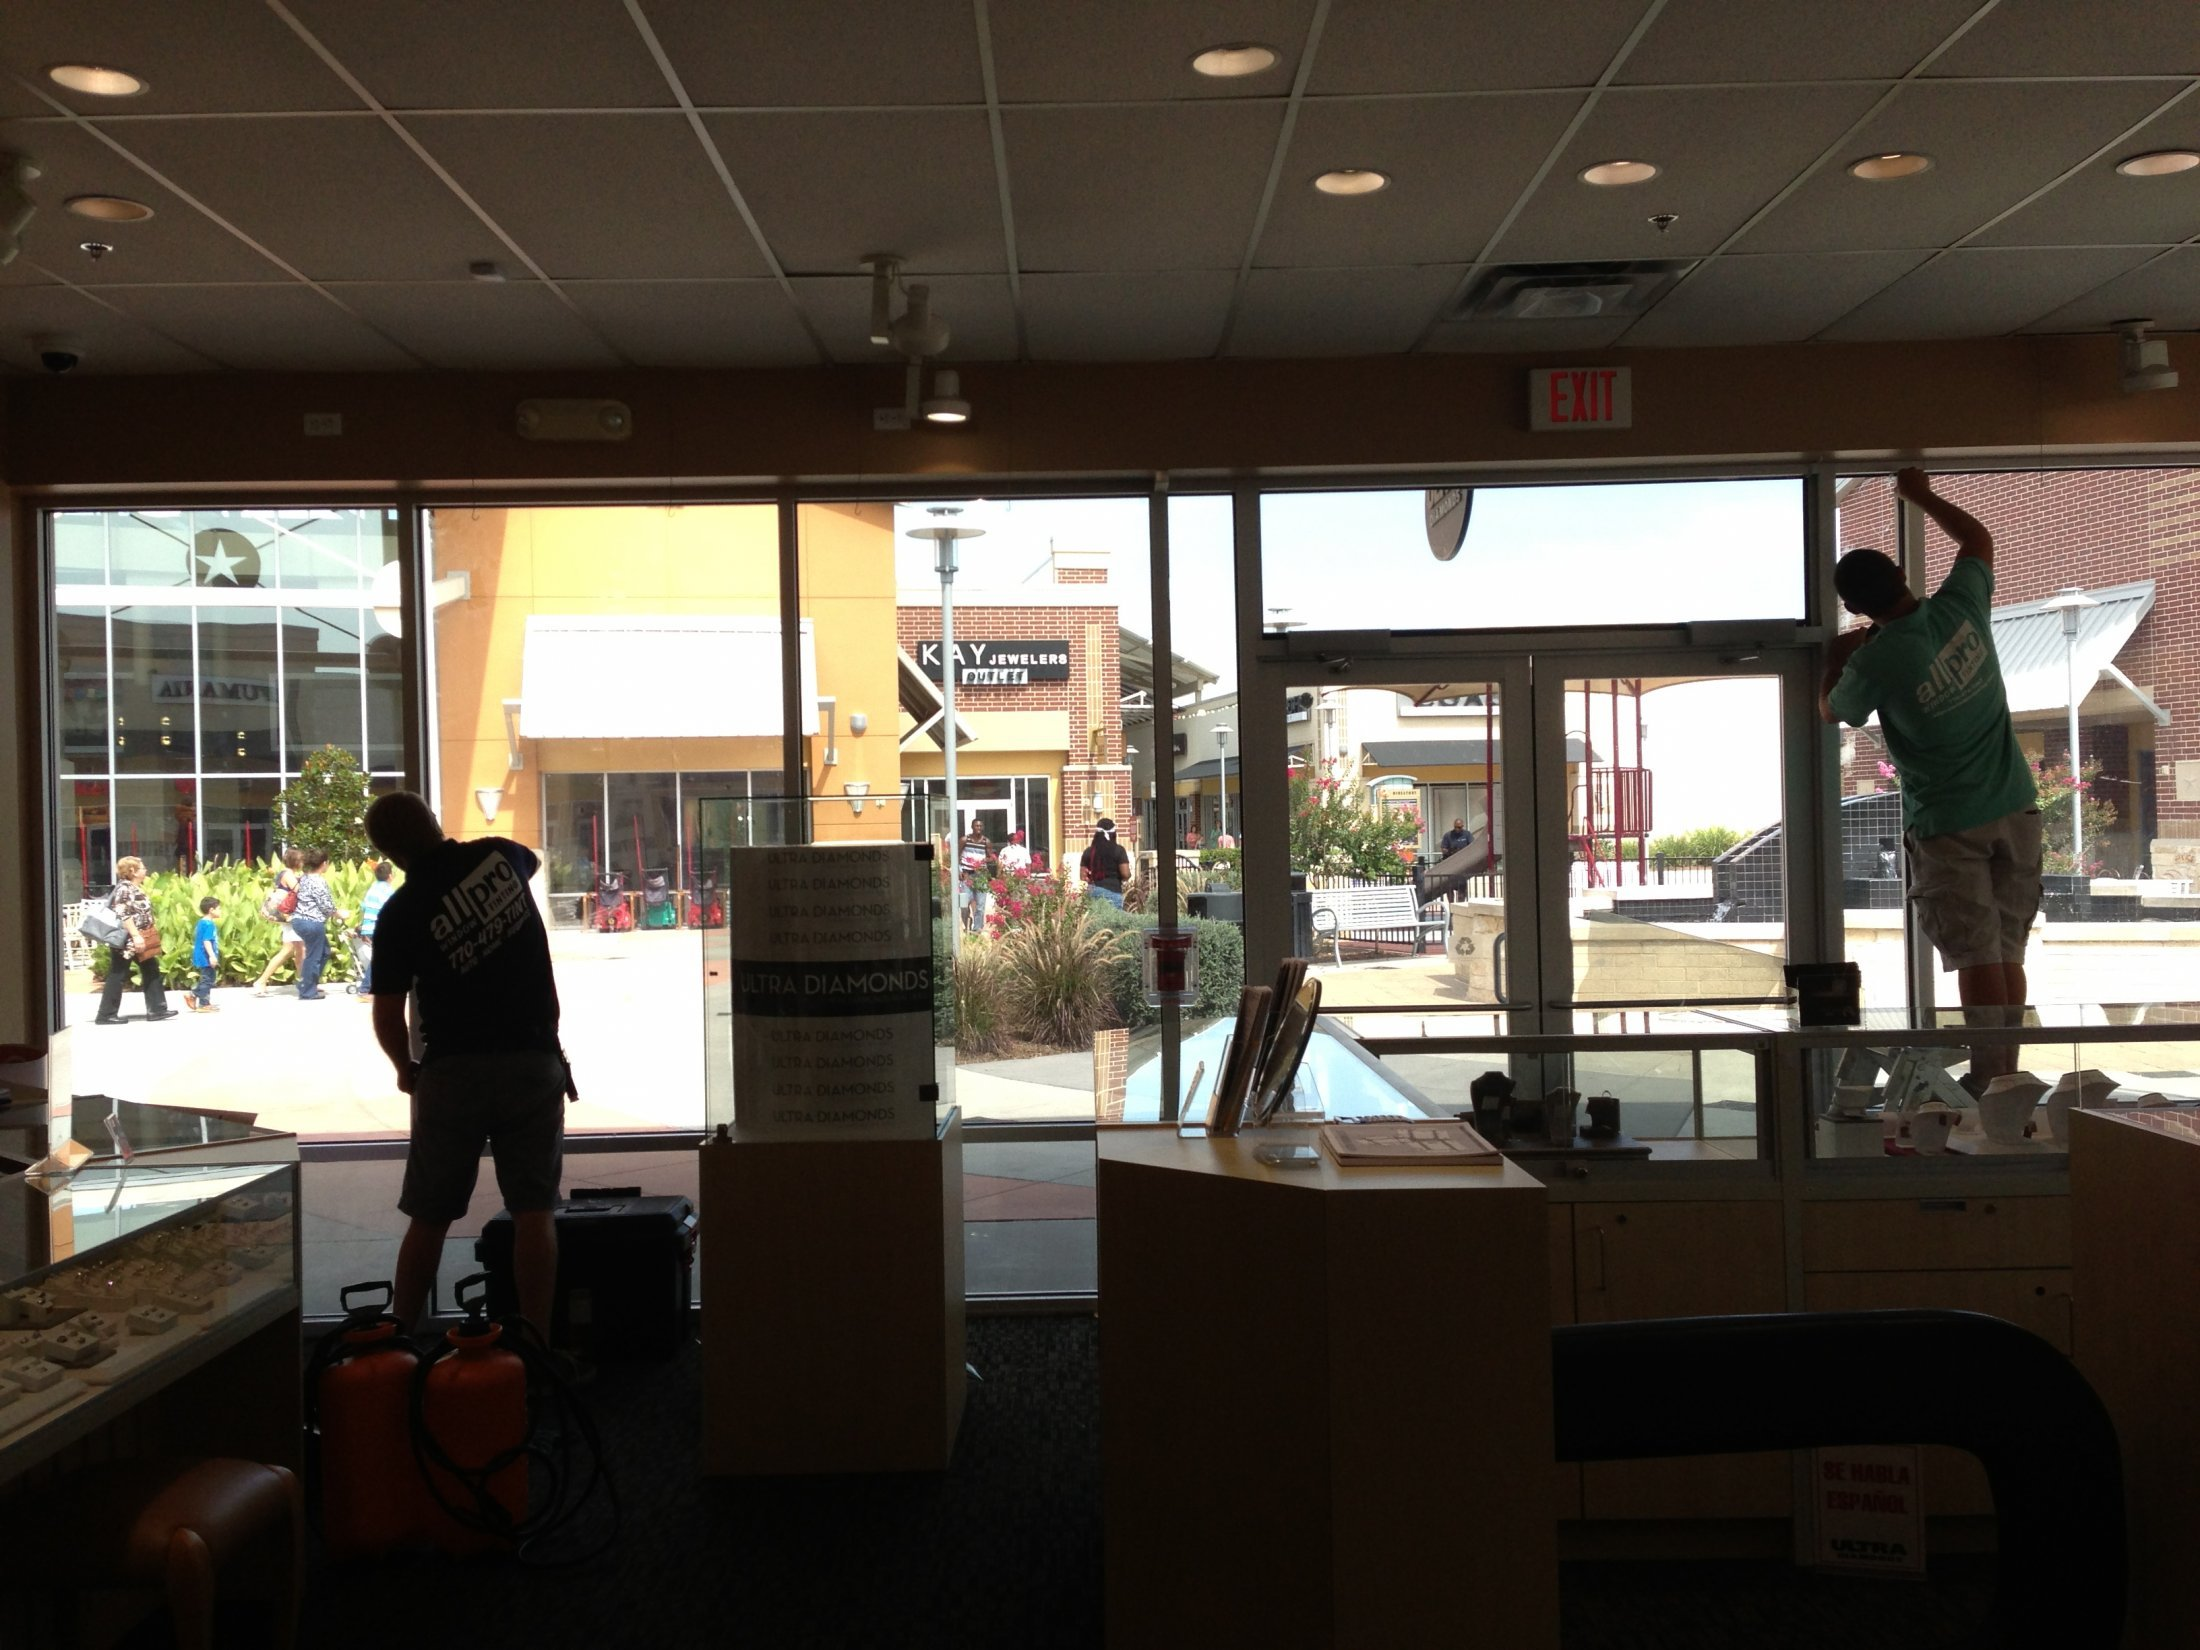 Commercial Gallery   Commercial Window Tint   All Pro Window